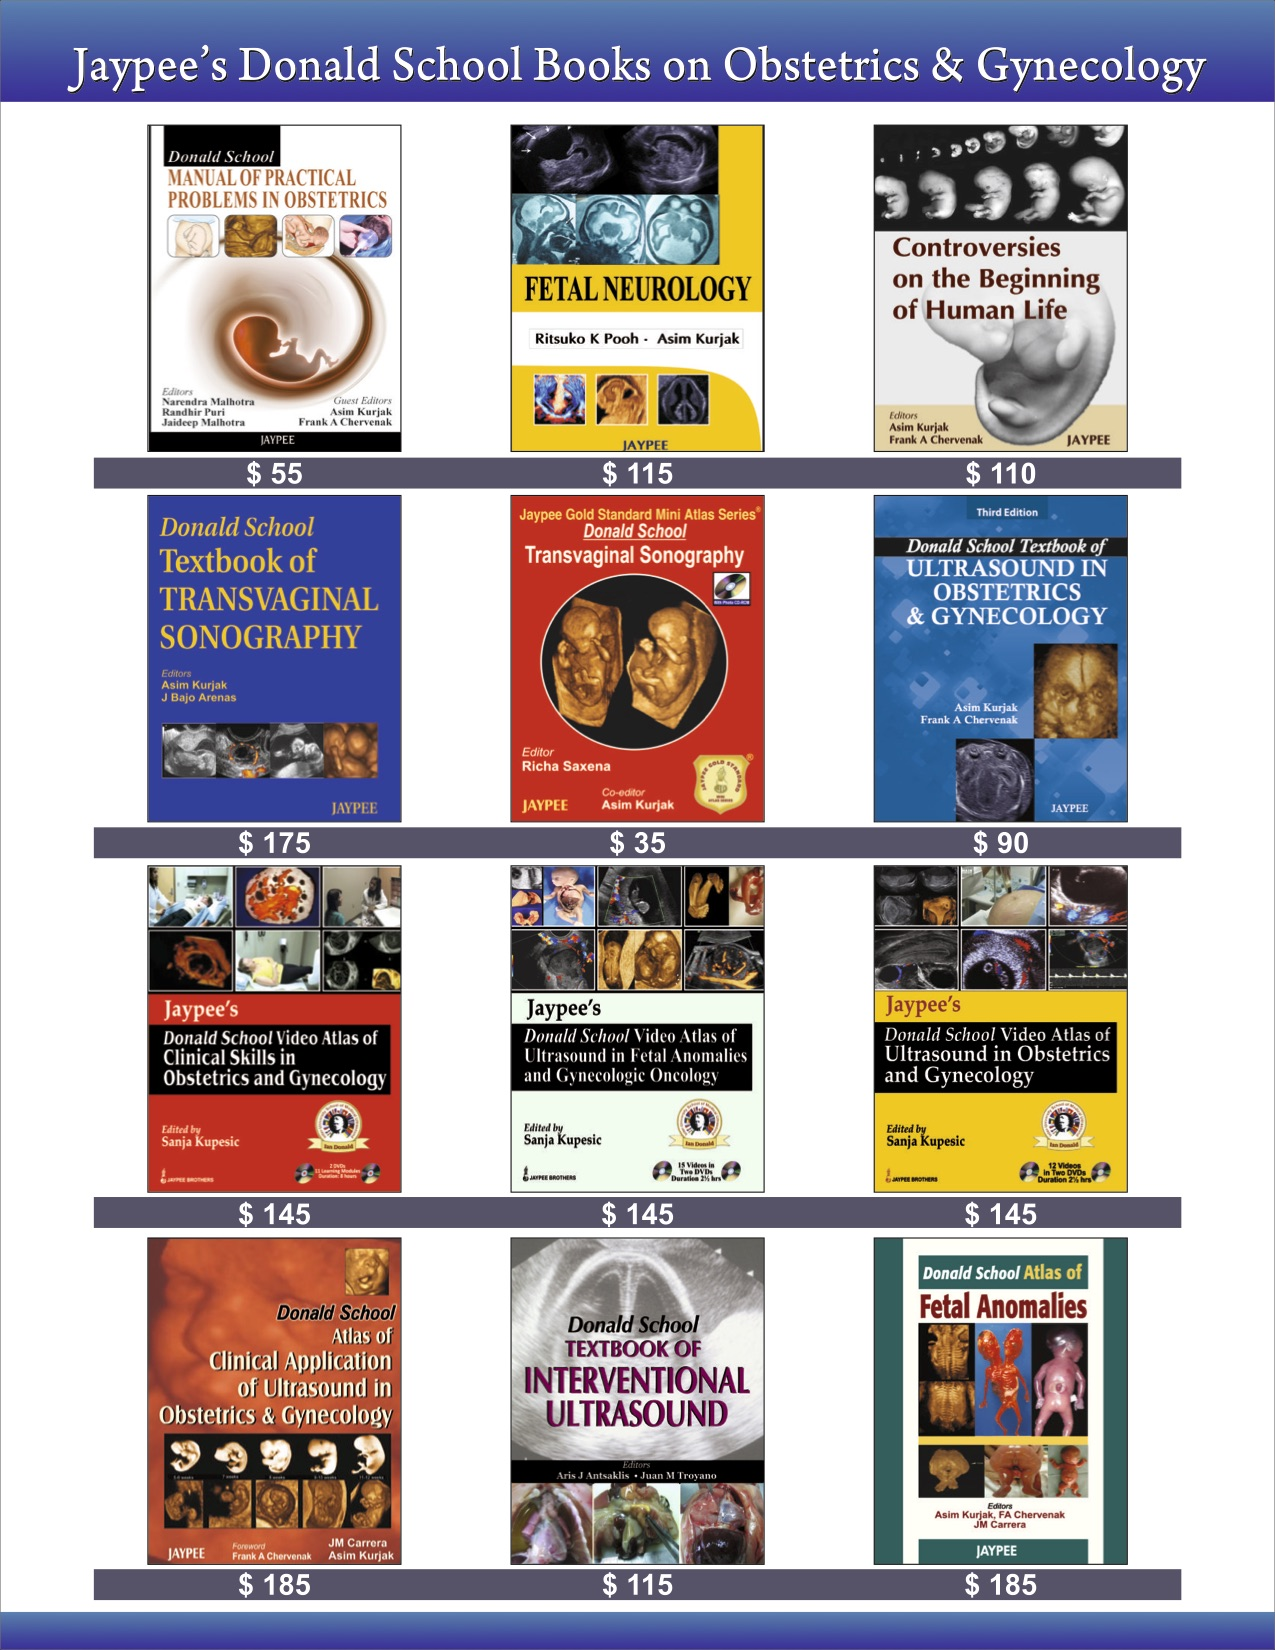 Ina Donald School Books from Jaypee 2